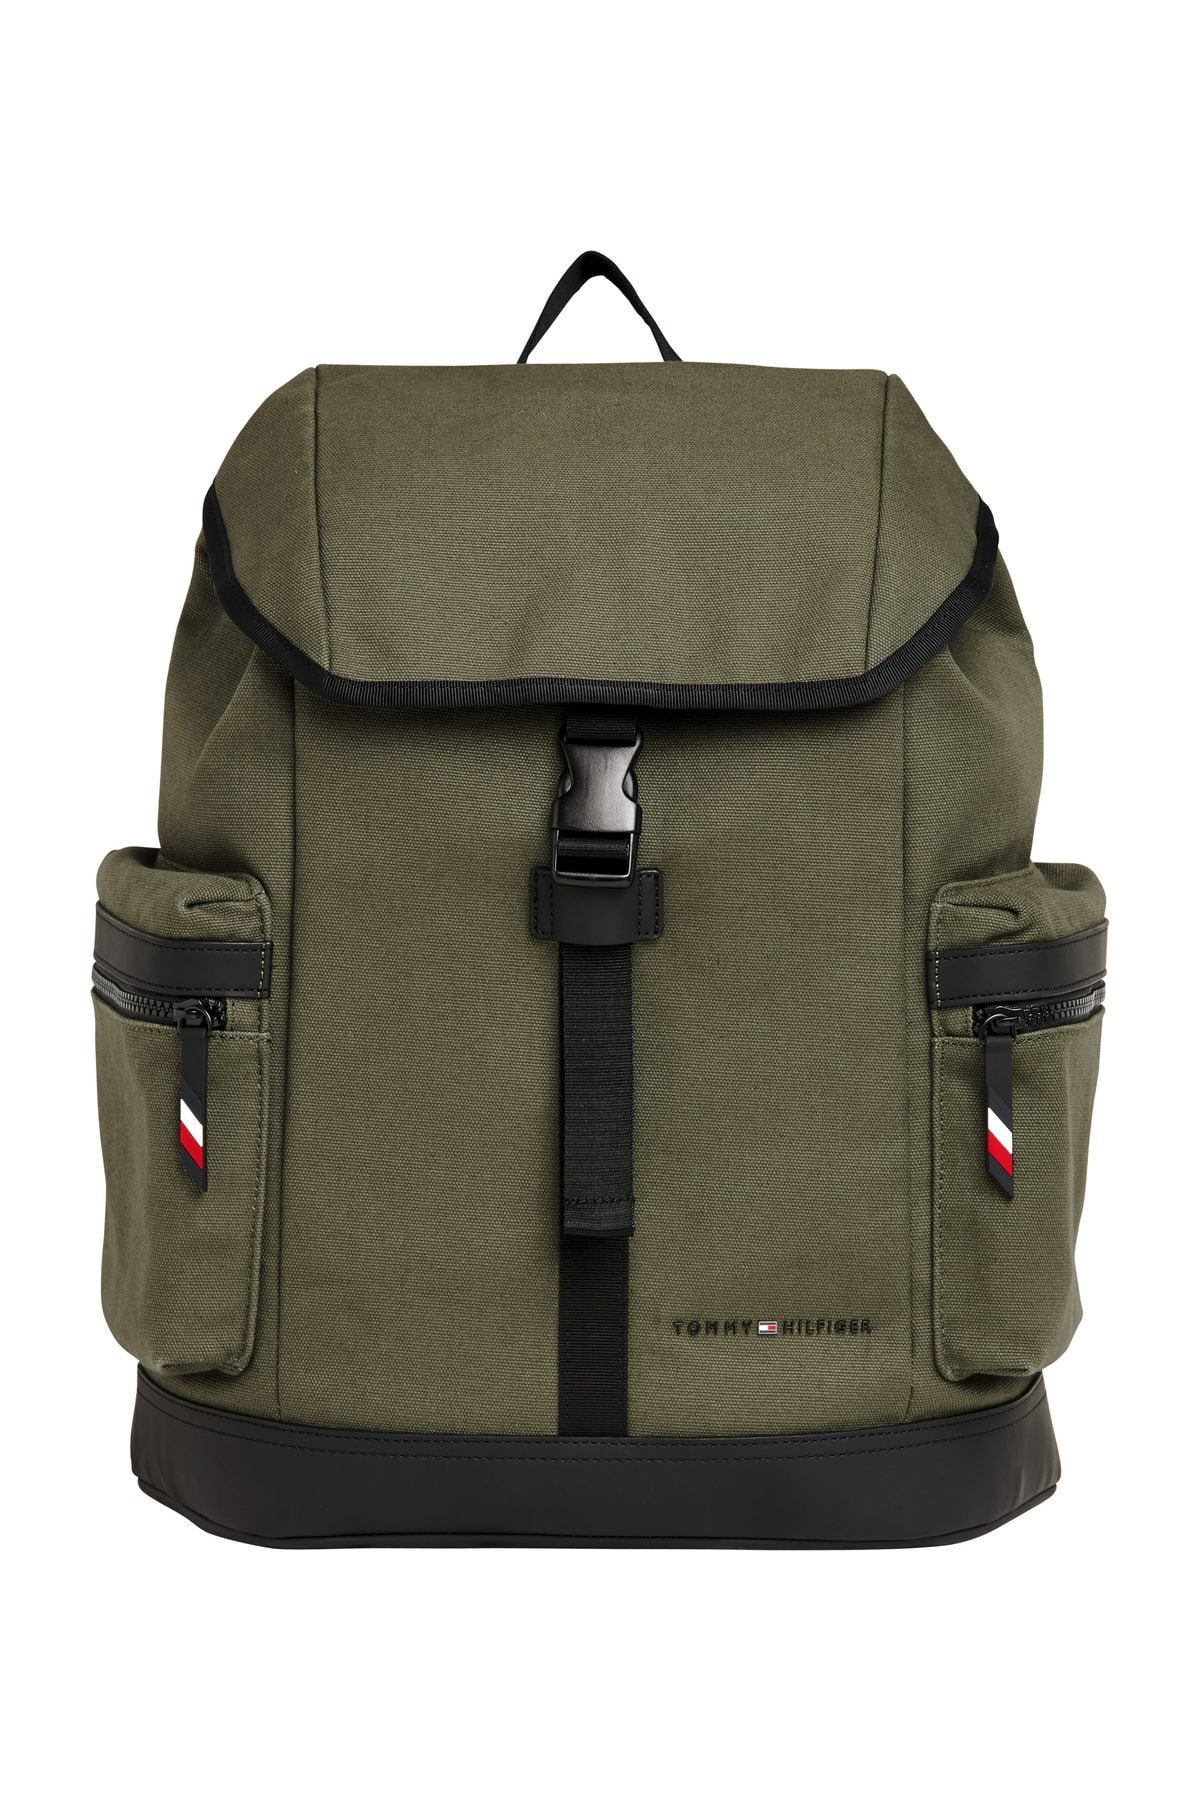 Tommy Hilfiger UTILITY CANVAS FLAP BACKPACK 1